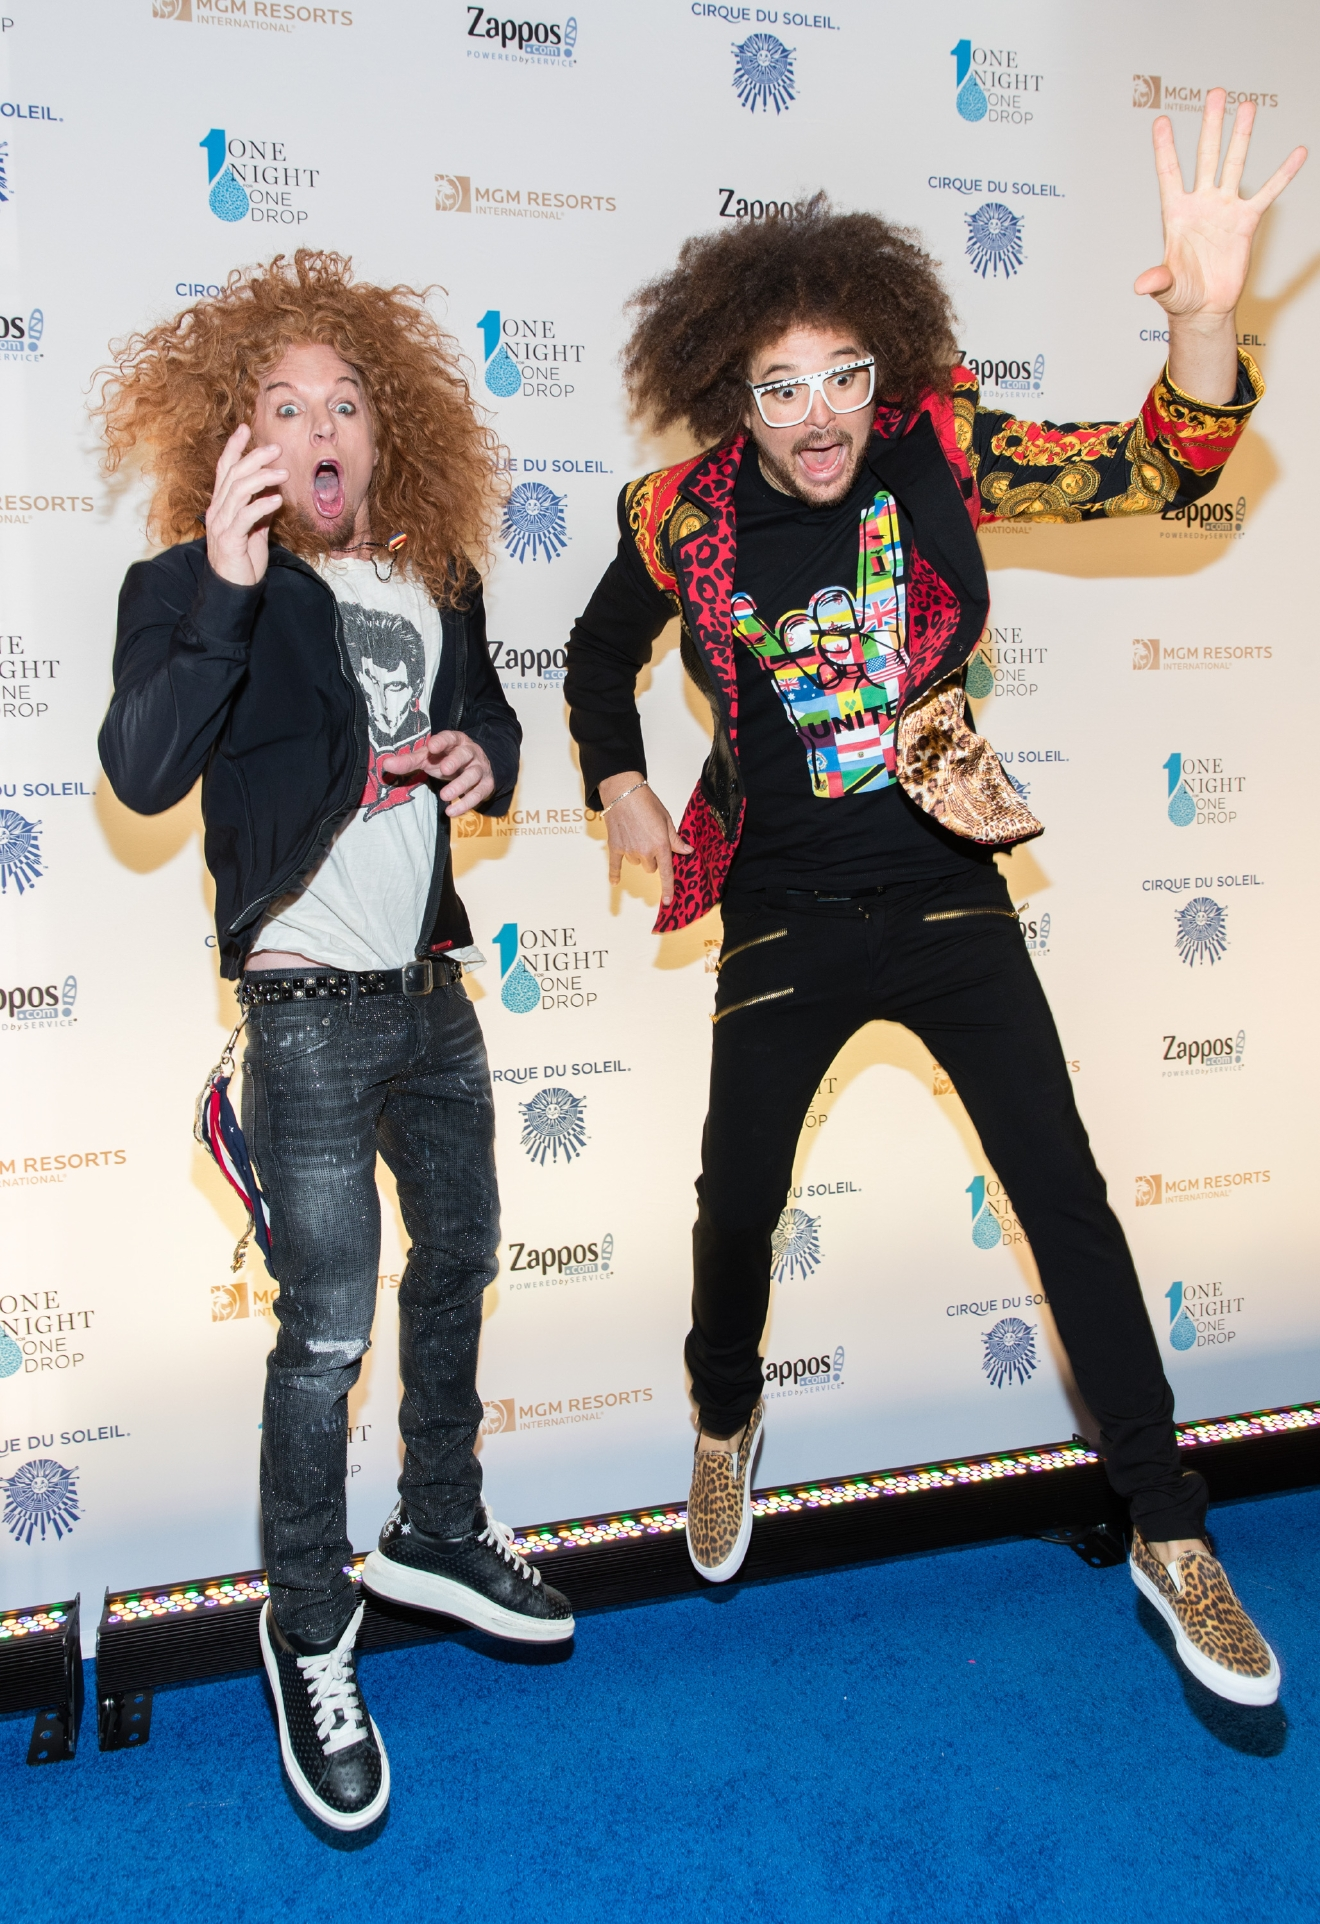 Carrot Top and Redfoo at One Night for One Drop 2017. (Photo courtesy of Erik Kabik/ErikKabik.com)